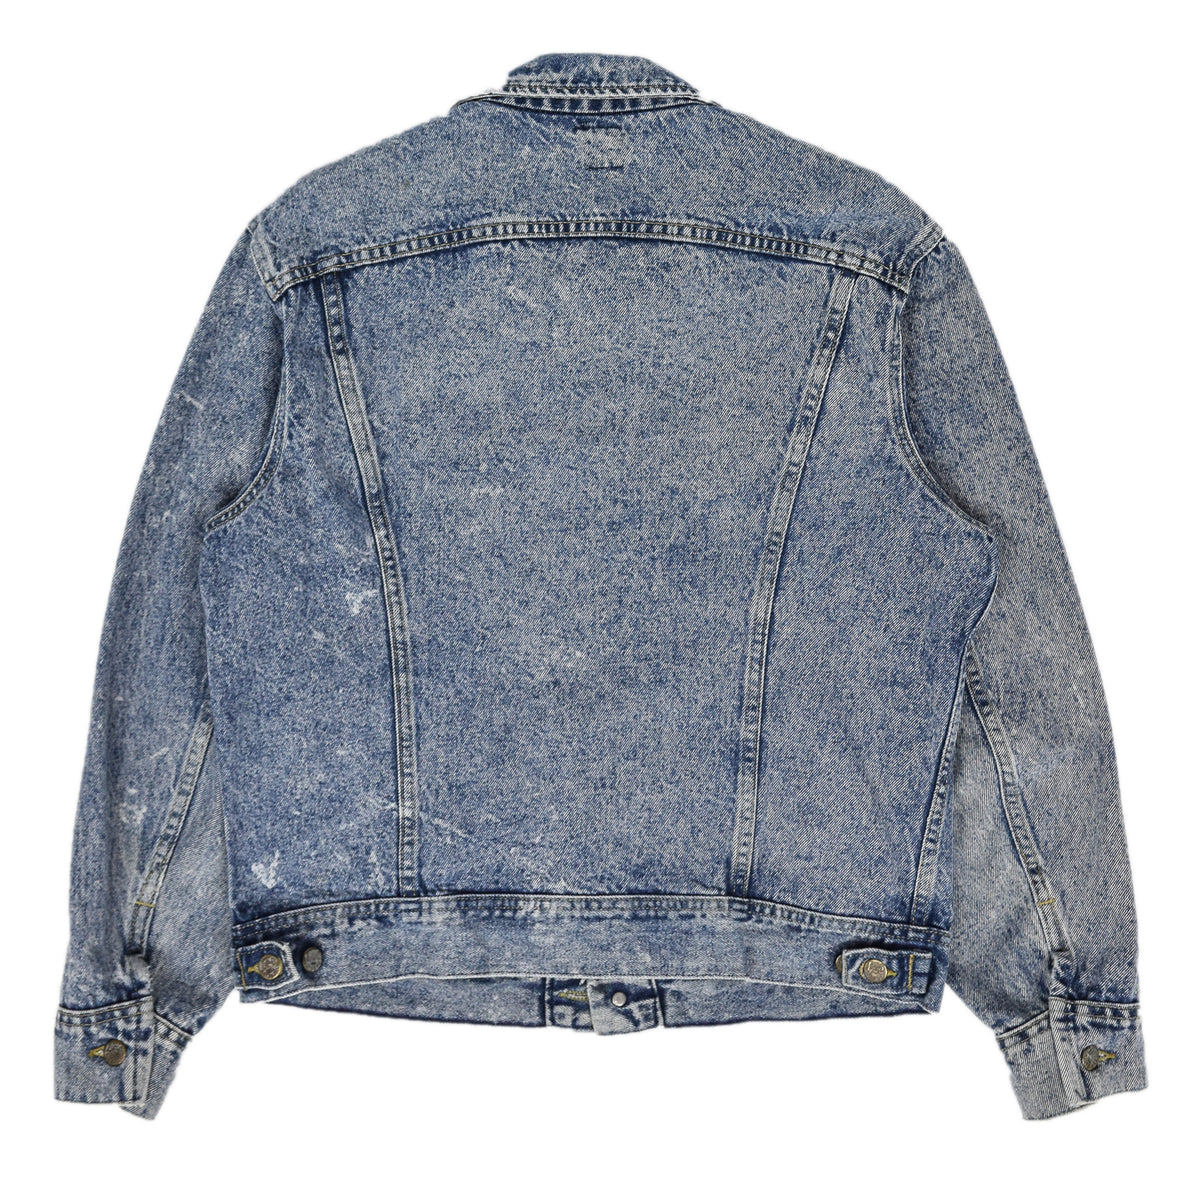 Vintage 70s Lee Riders Stonewash Blue Denim Trucker Style Jacket Made in USA M back